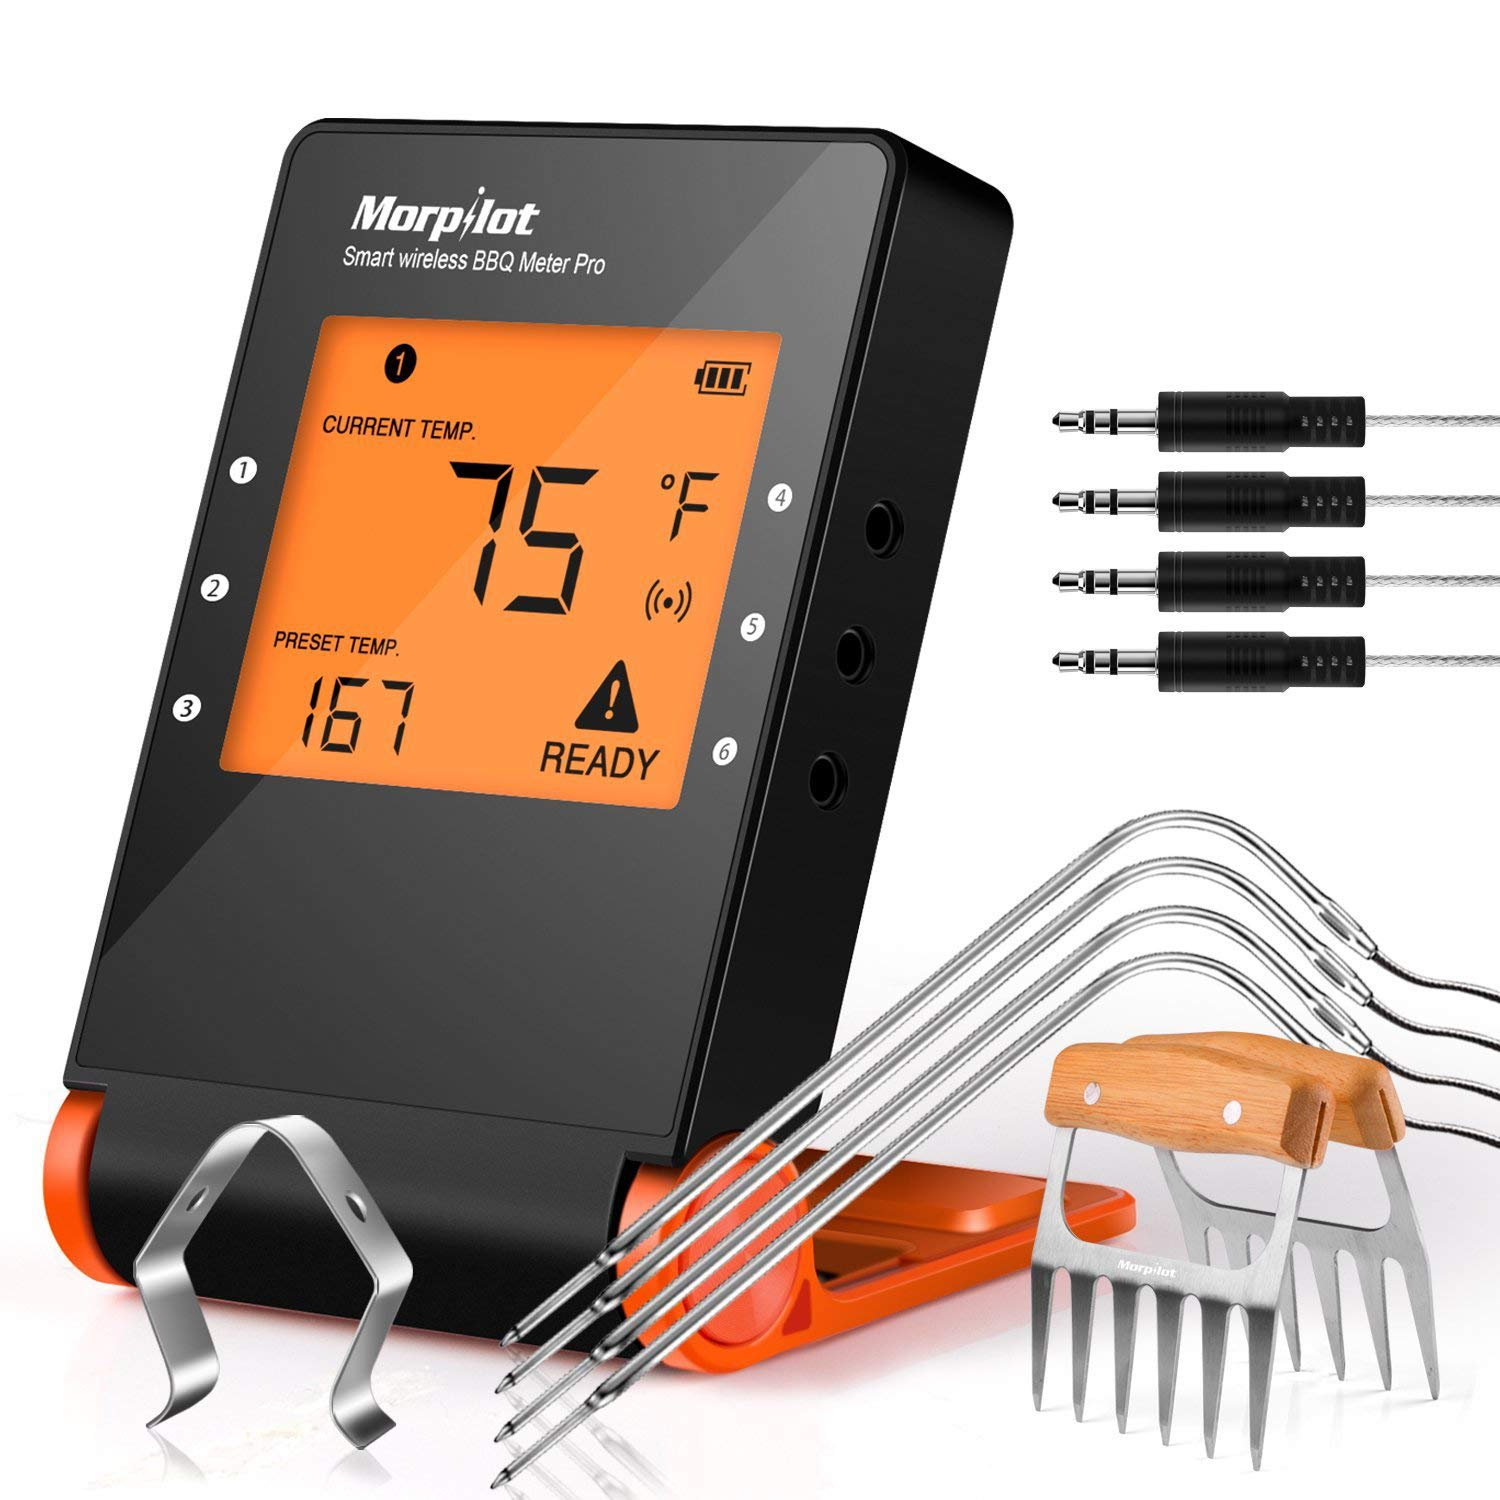 Morpilot Instant Read Wireless Thermometer